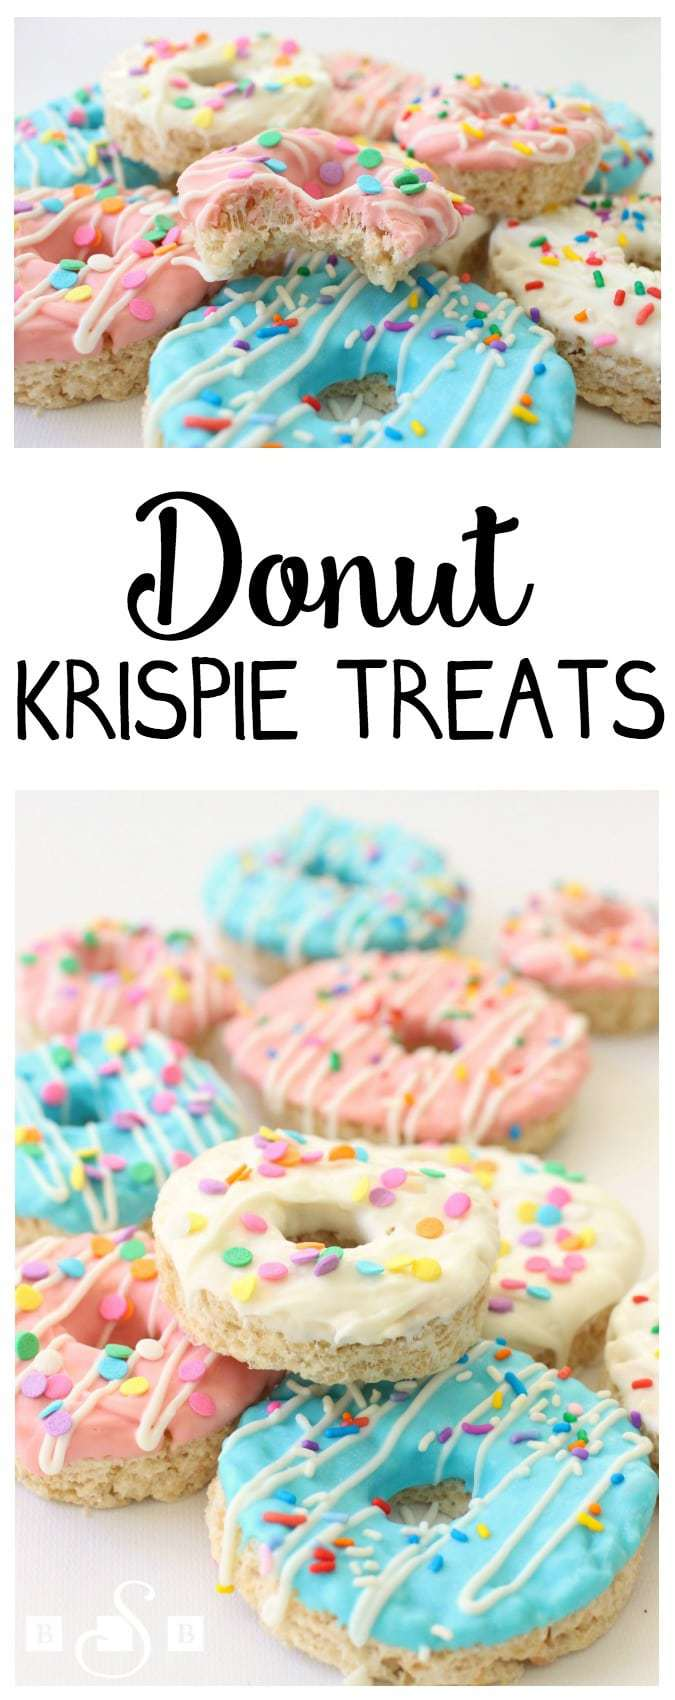 I saw these darling treats at a specialty kitchen store recently and know I had to make them at home. Aren't they so cute?! My kids about fell over when they saw them! They're super simple to make and taste amazing. I mean, c'mon- you're covering a buttery- marshmallow treat with chocolate and sprinkles- it HAS to taste good!